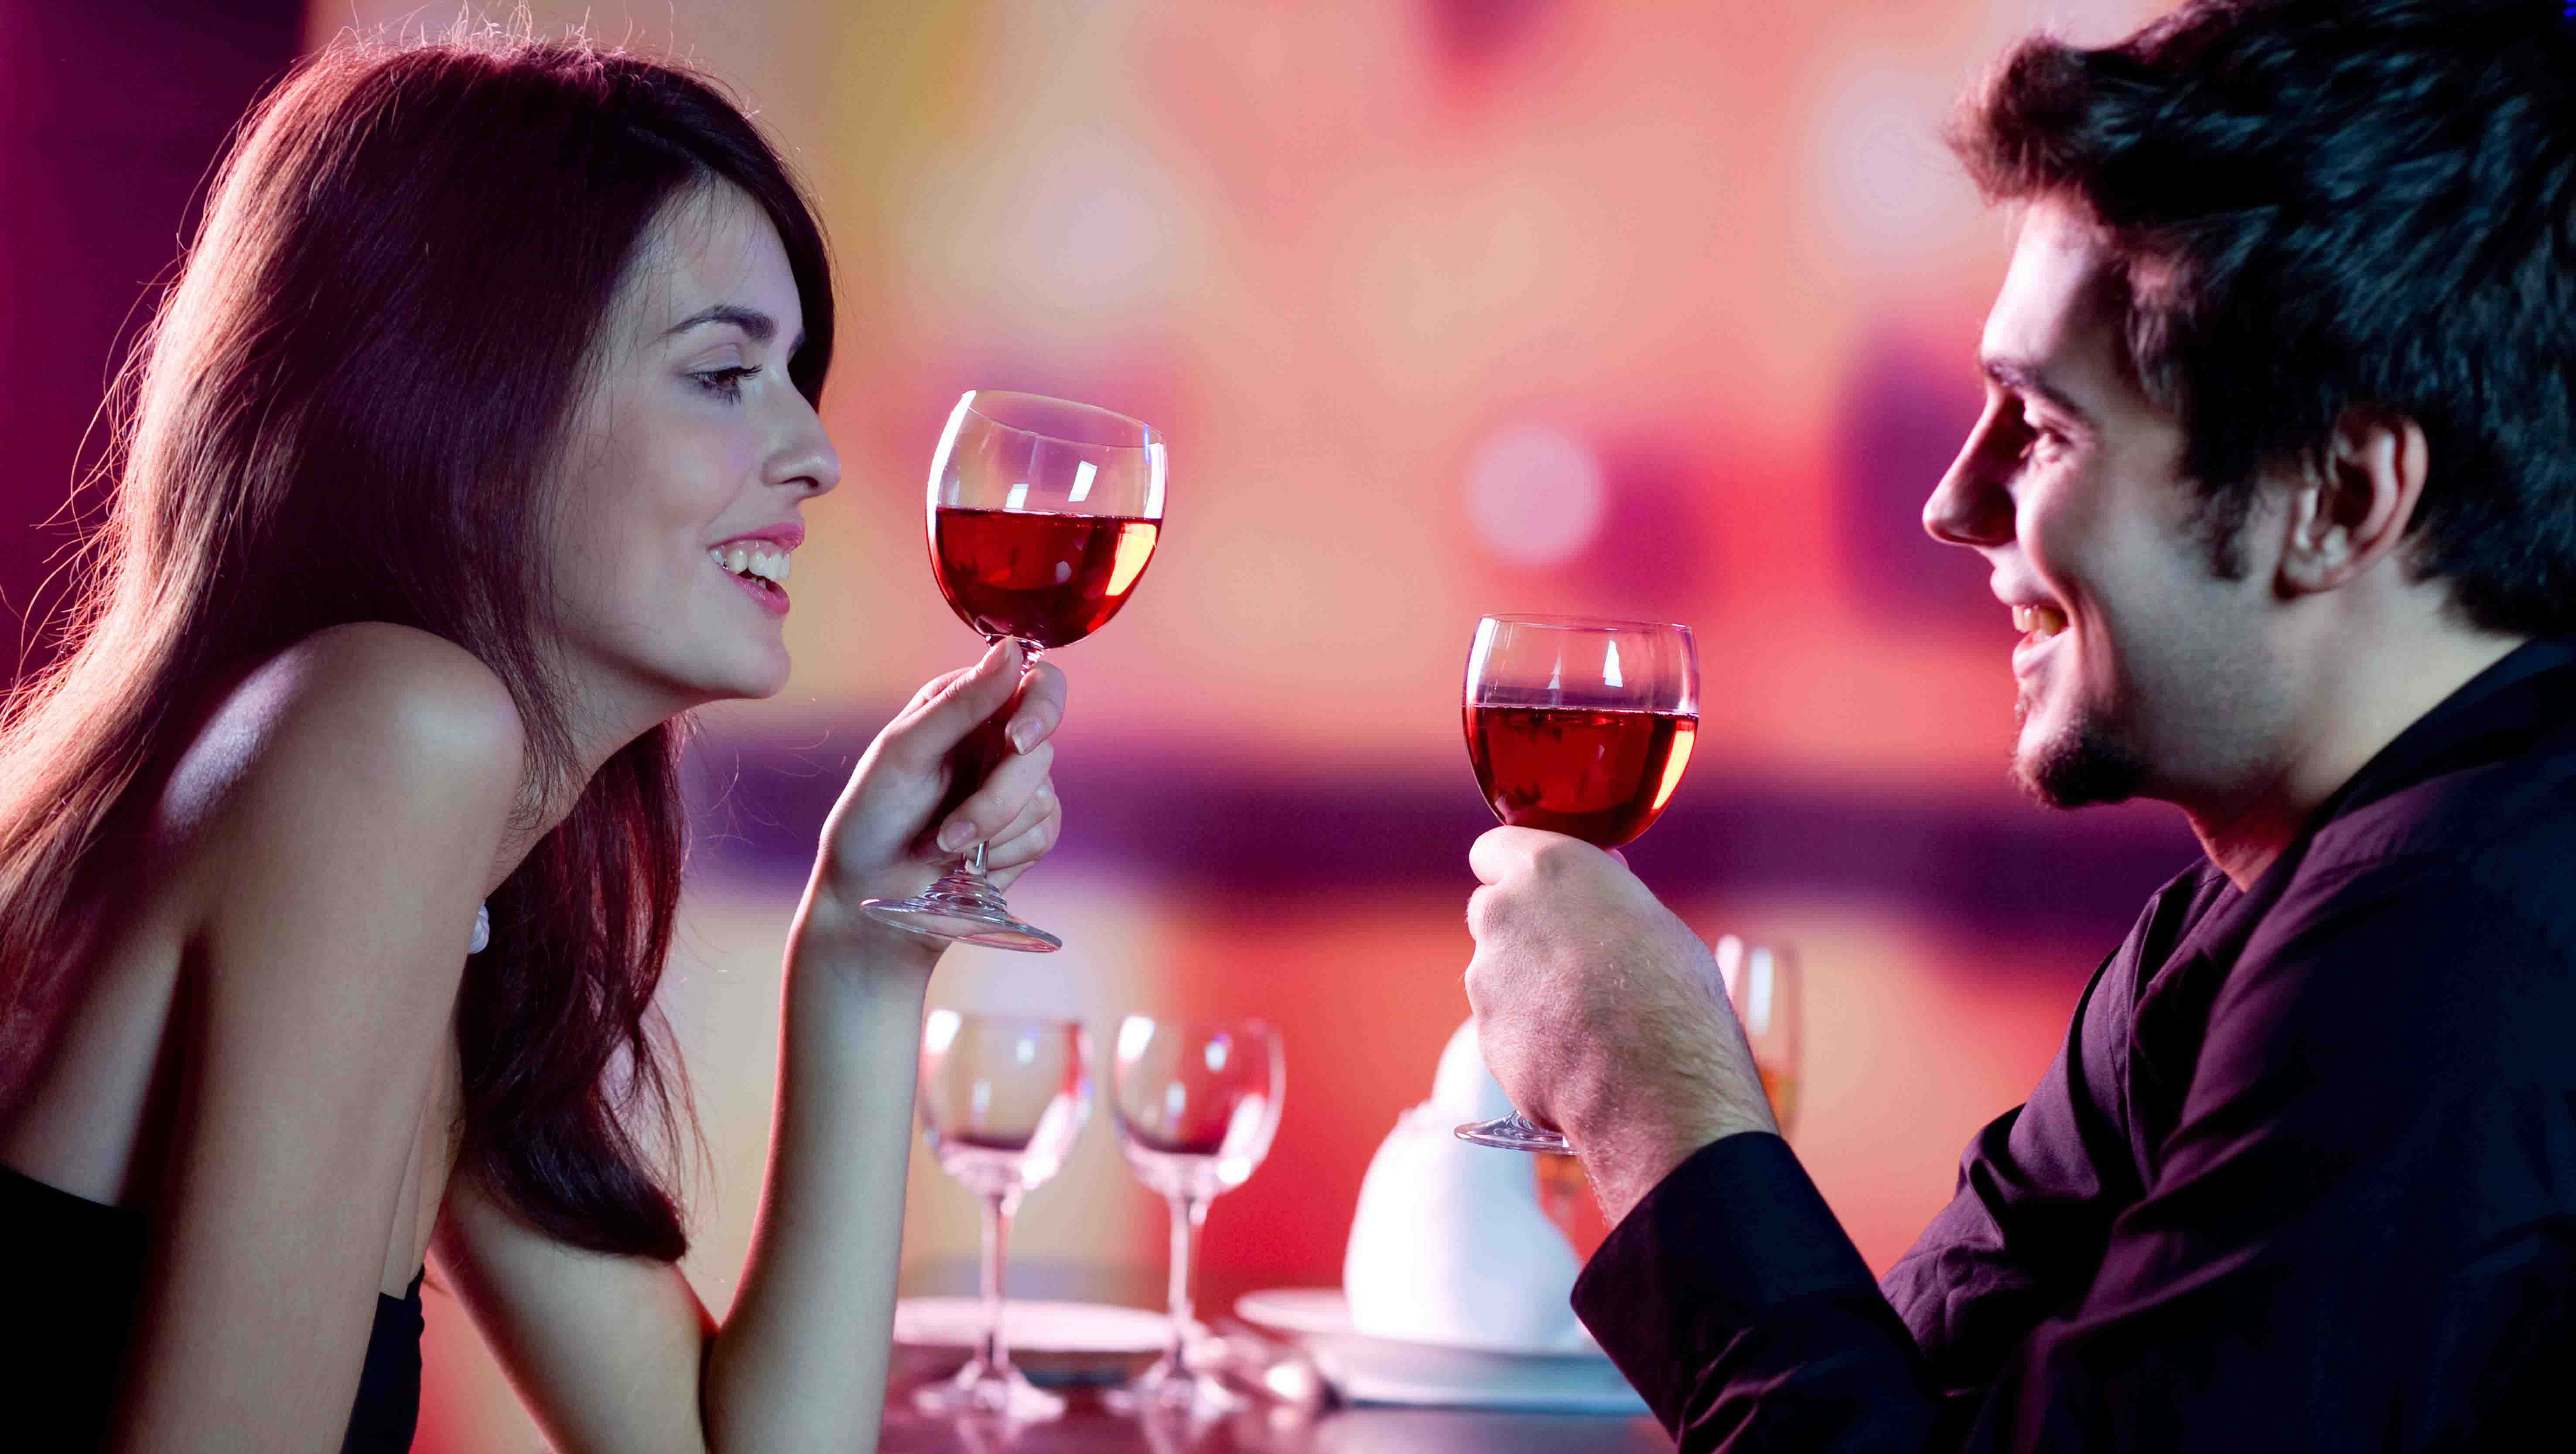 raisin city dating Chat online in raisin city, united states with over 330m members on badoo, you will find someone in raisin city make new friends in raisin city at badoo today.